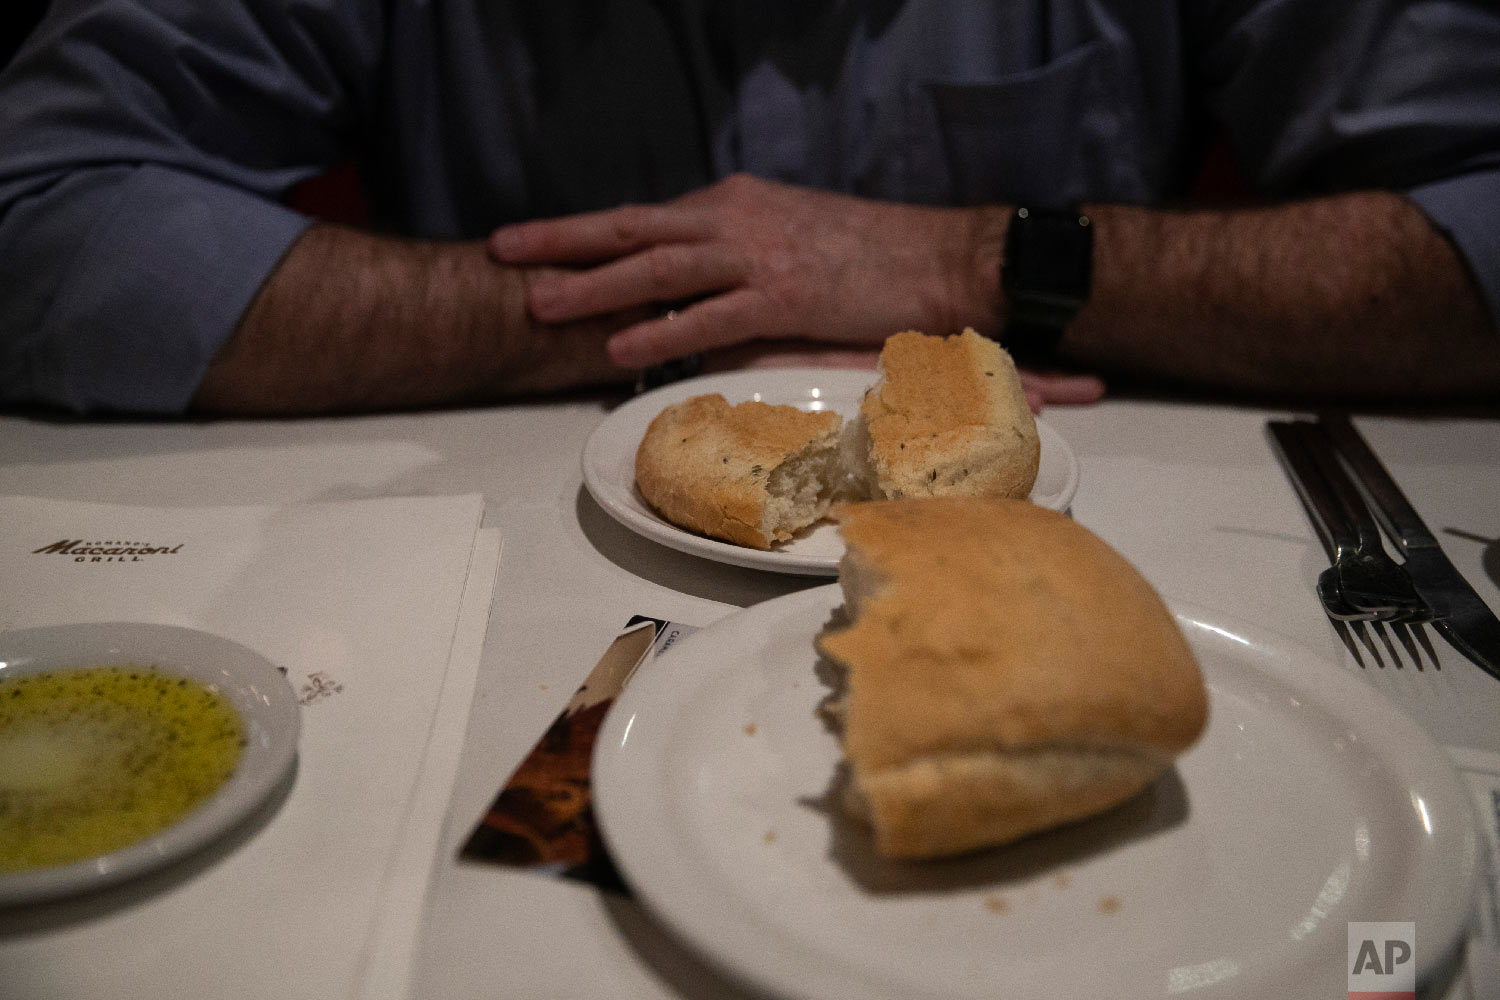 Chris George, a federal employee furloughed from his job as a forestry technician supervisor for the U.S. Department of Agriculture Forest Service, waits for his meal at a Romano's Macaroni Grill restaurant Saturday, Jan. 19, 2019, in Redlands, Calif. (AP Photo/Jae C. Hong)